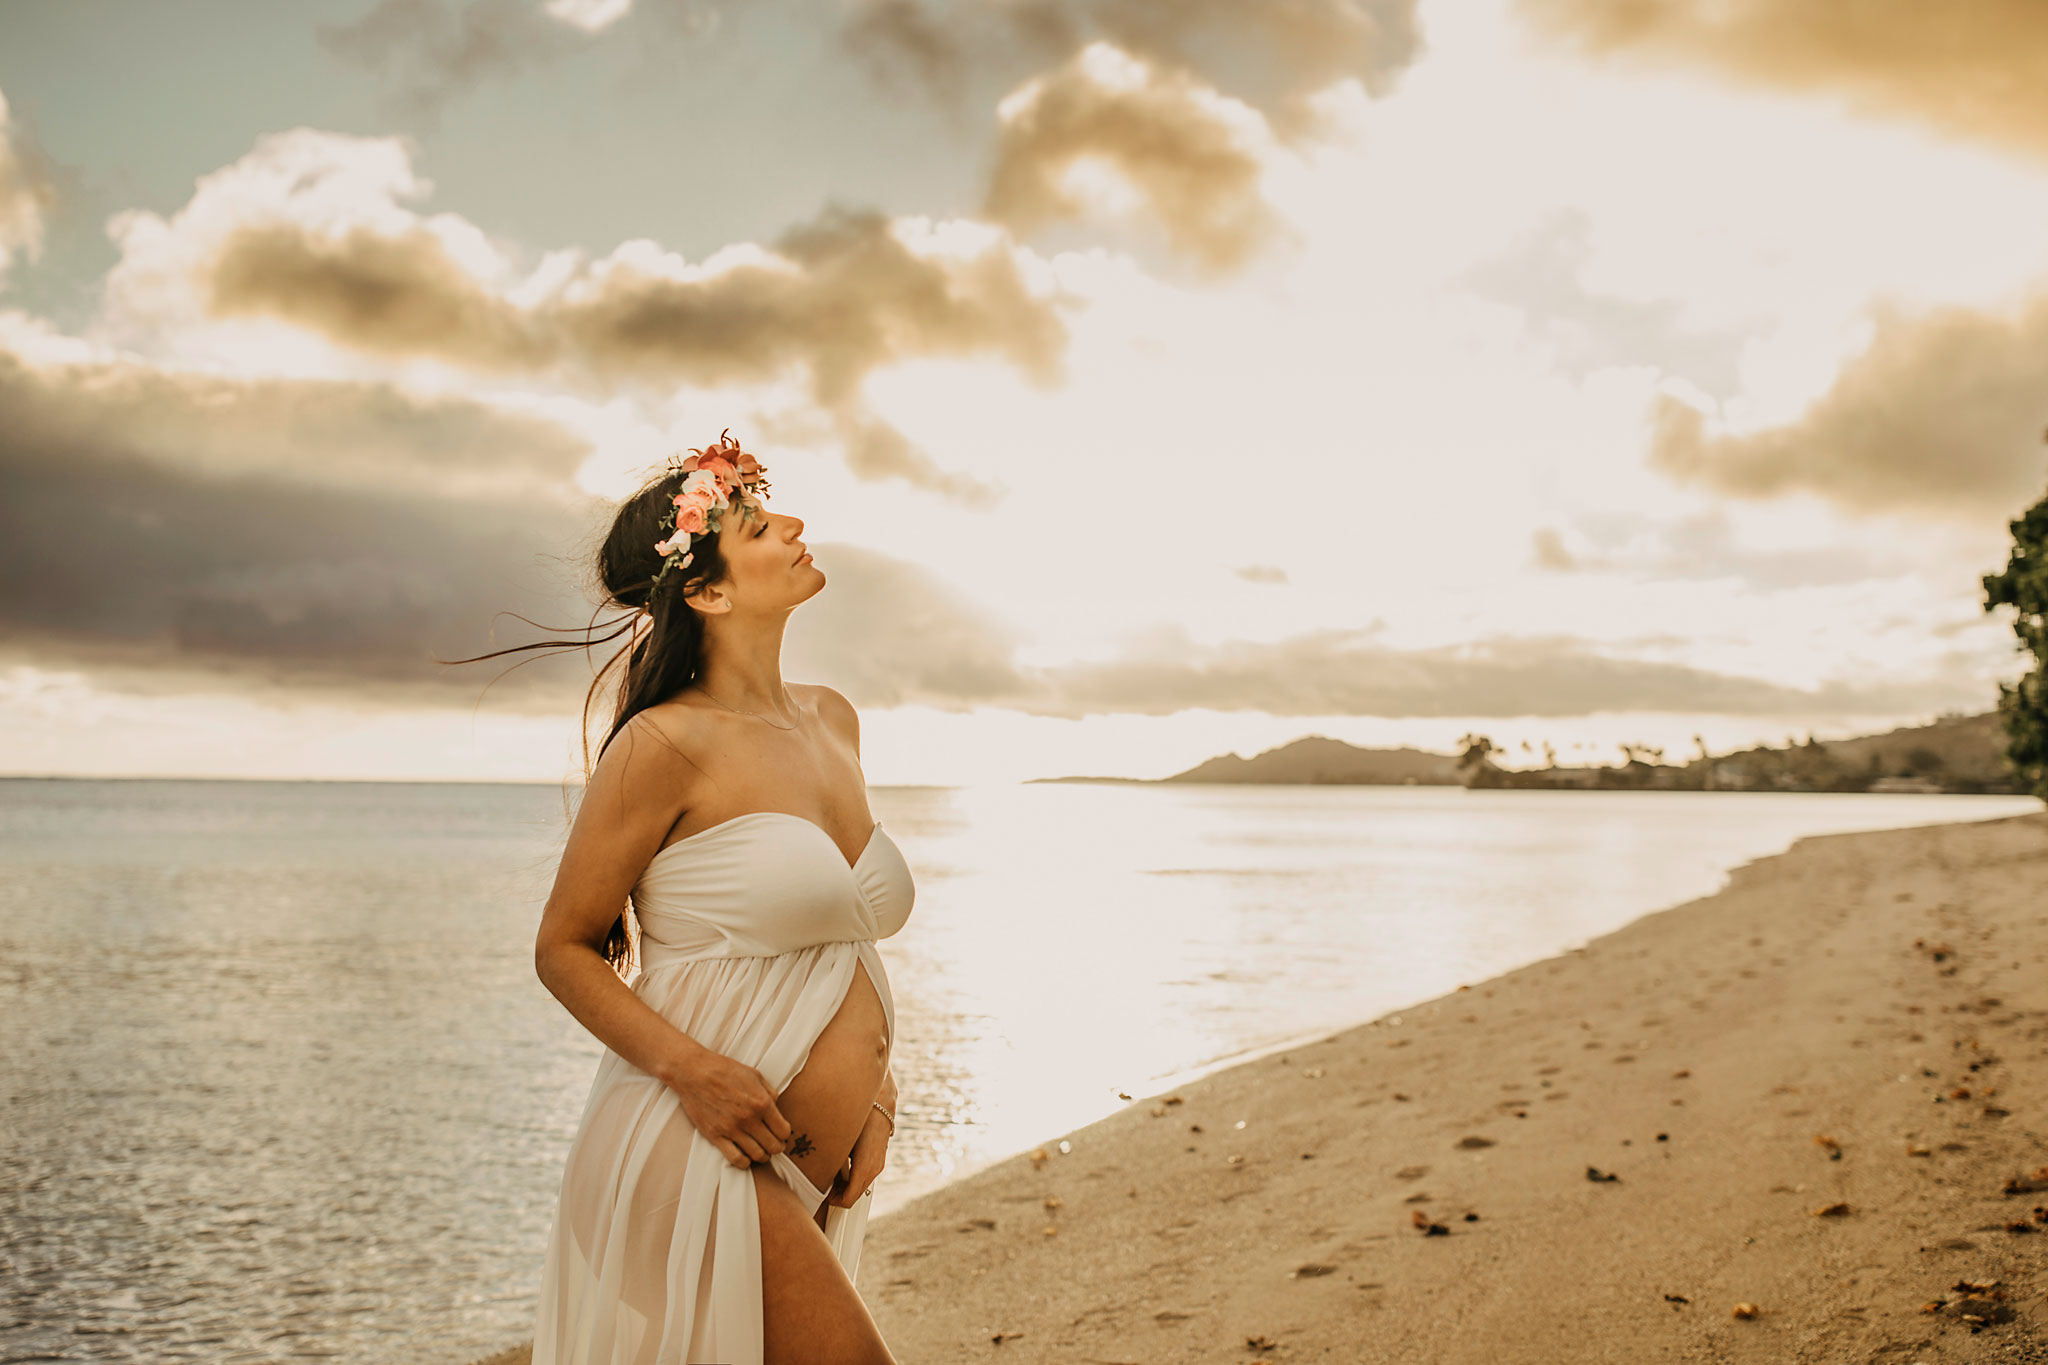 Hawaii-Maternity-Photographer25.jpg